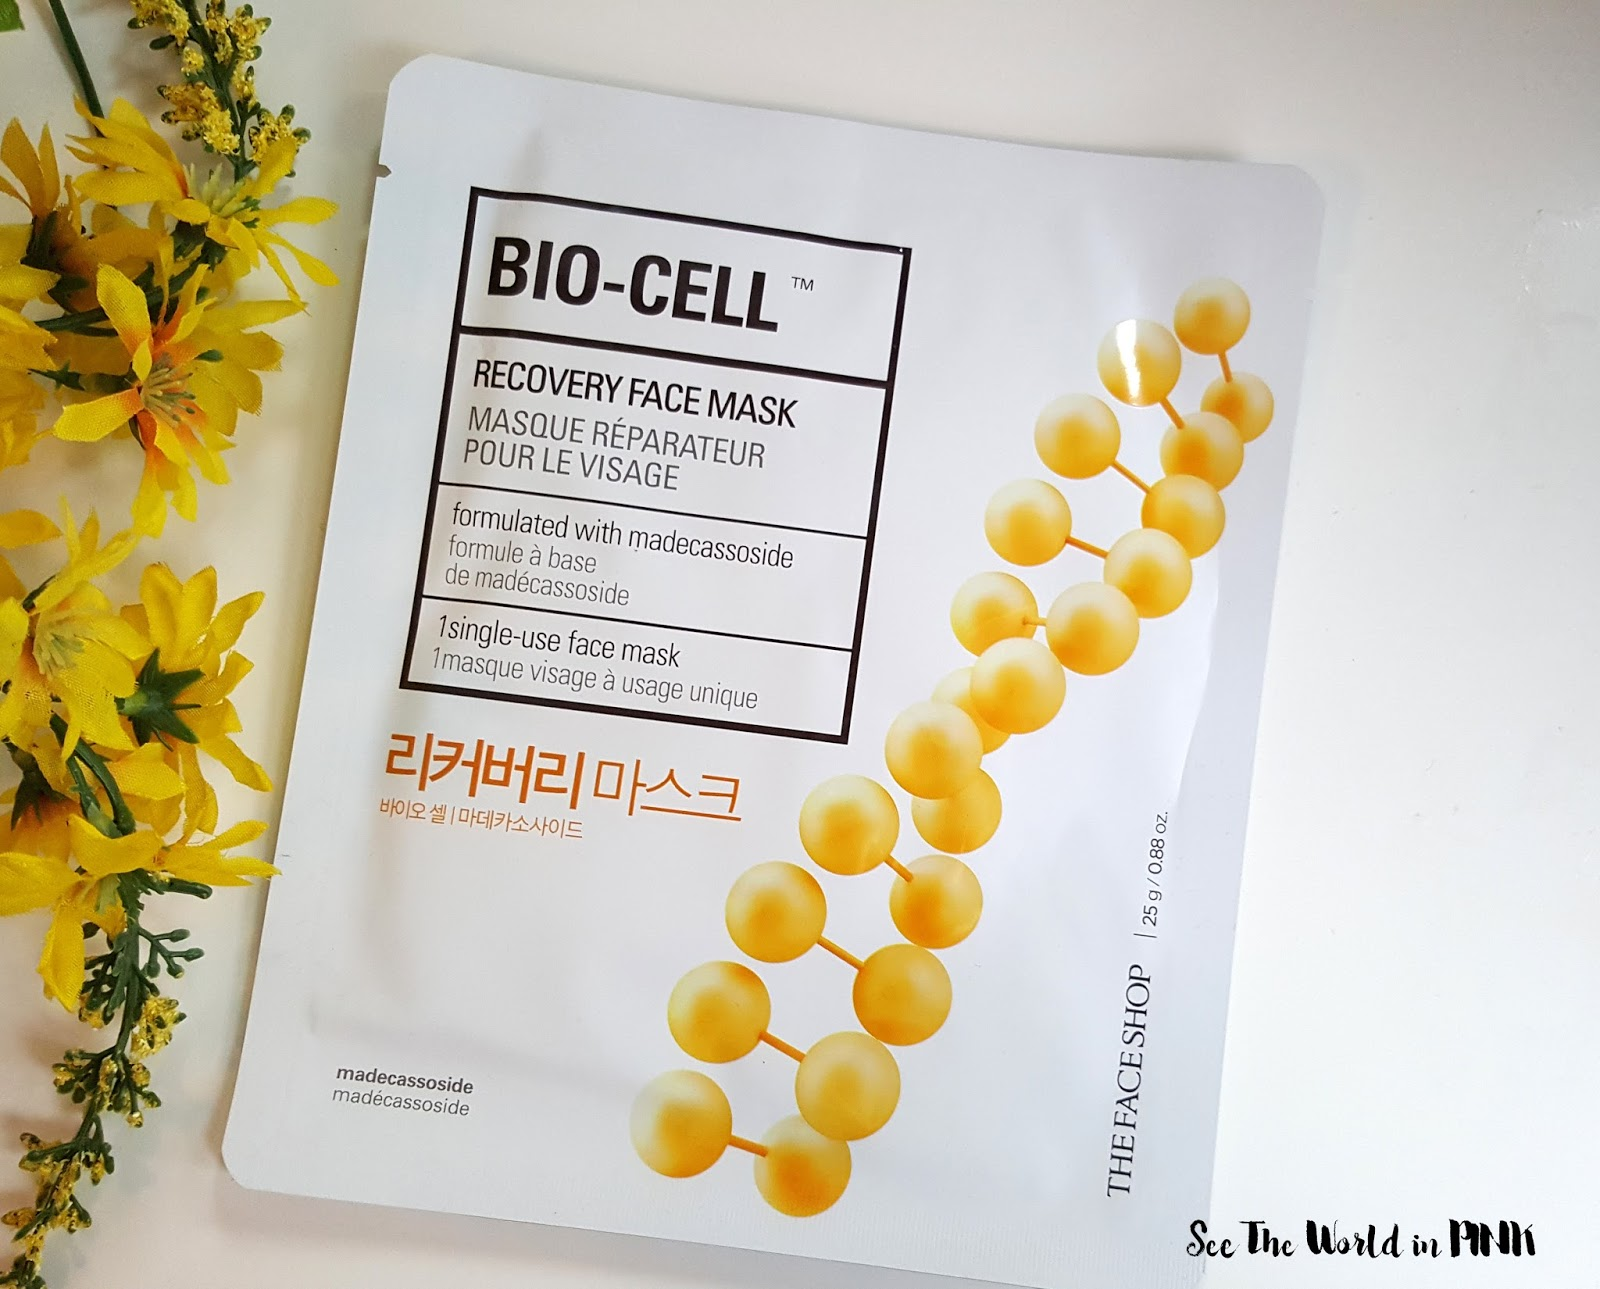 Mask Wednesday - The Face Shop Bio-Cell Recovery Face Mask